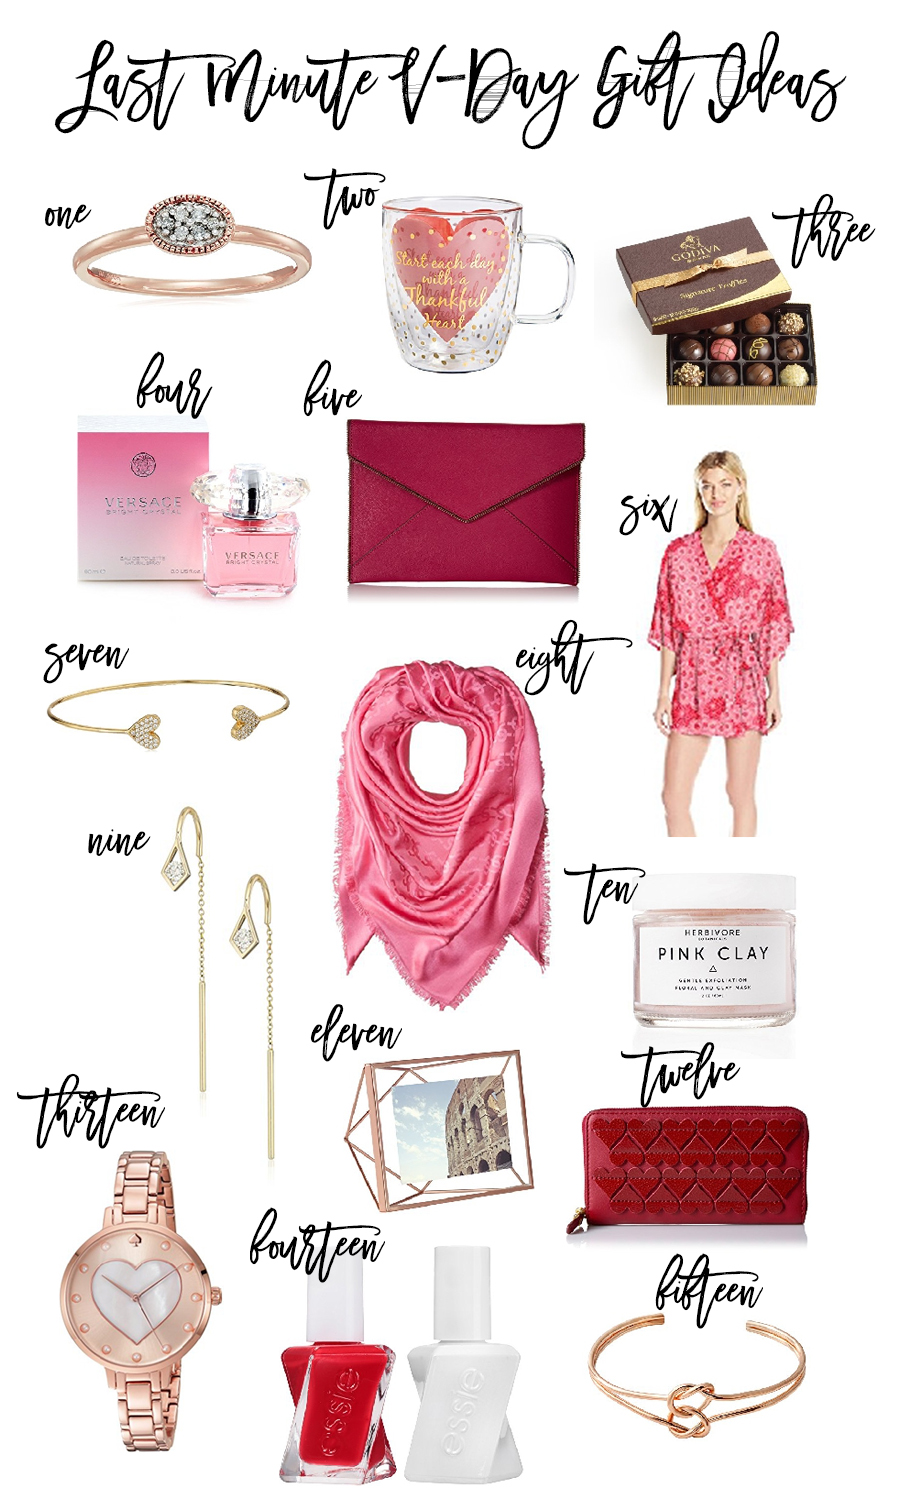 Valentines Day Gifts for the Procrastinator-Last Minute VDay Gifts-Gifts For Her-Gift Guide-Have Need Want